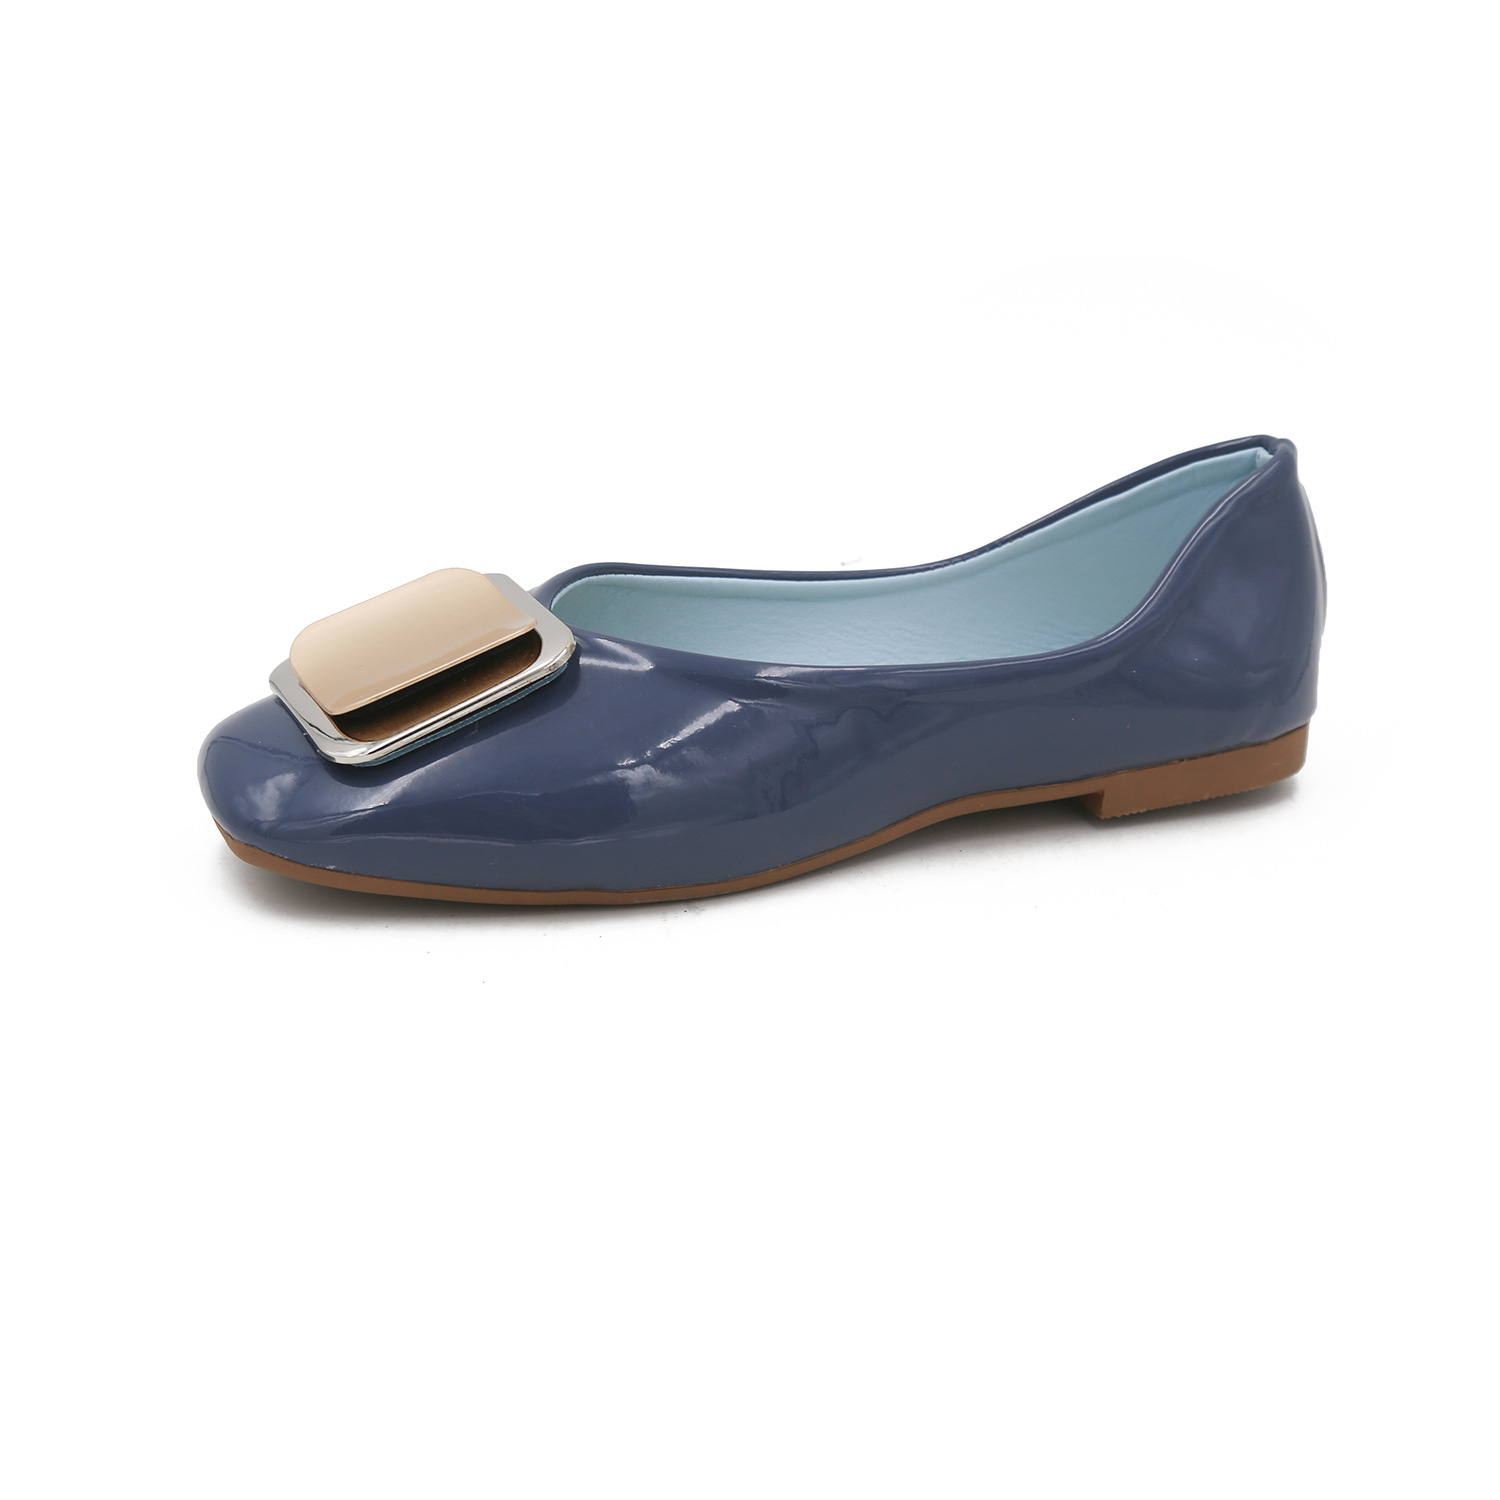 Women's Flats Decoration Autumn Fashion Toe Metal Casual Square All-Match Lazy-35-39